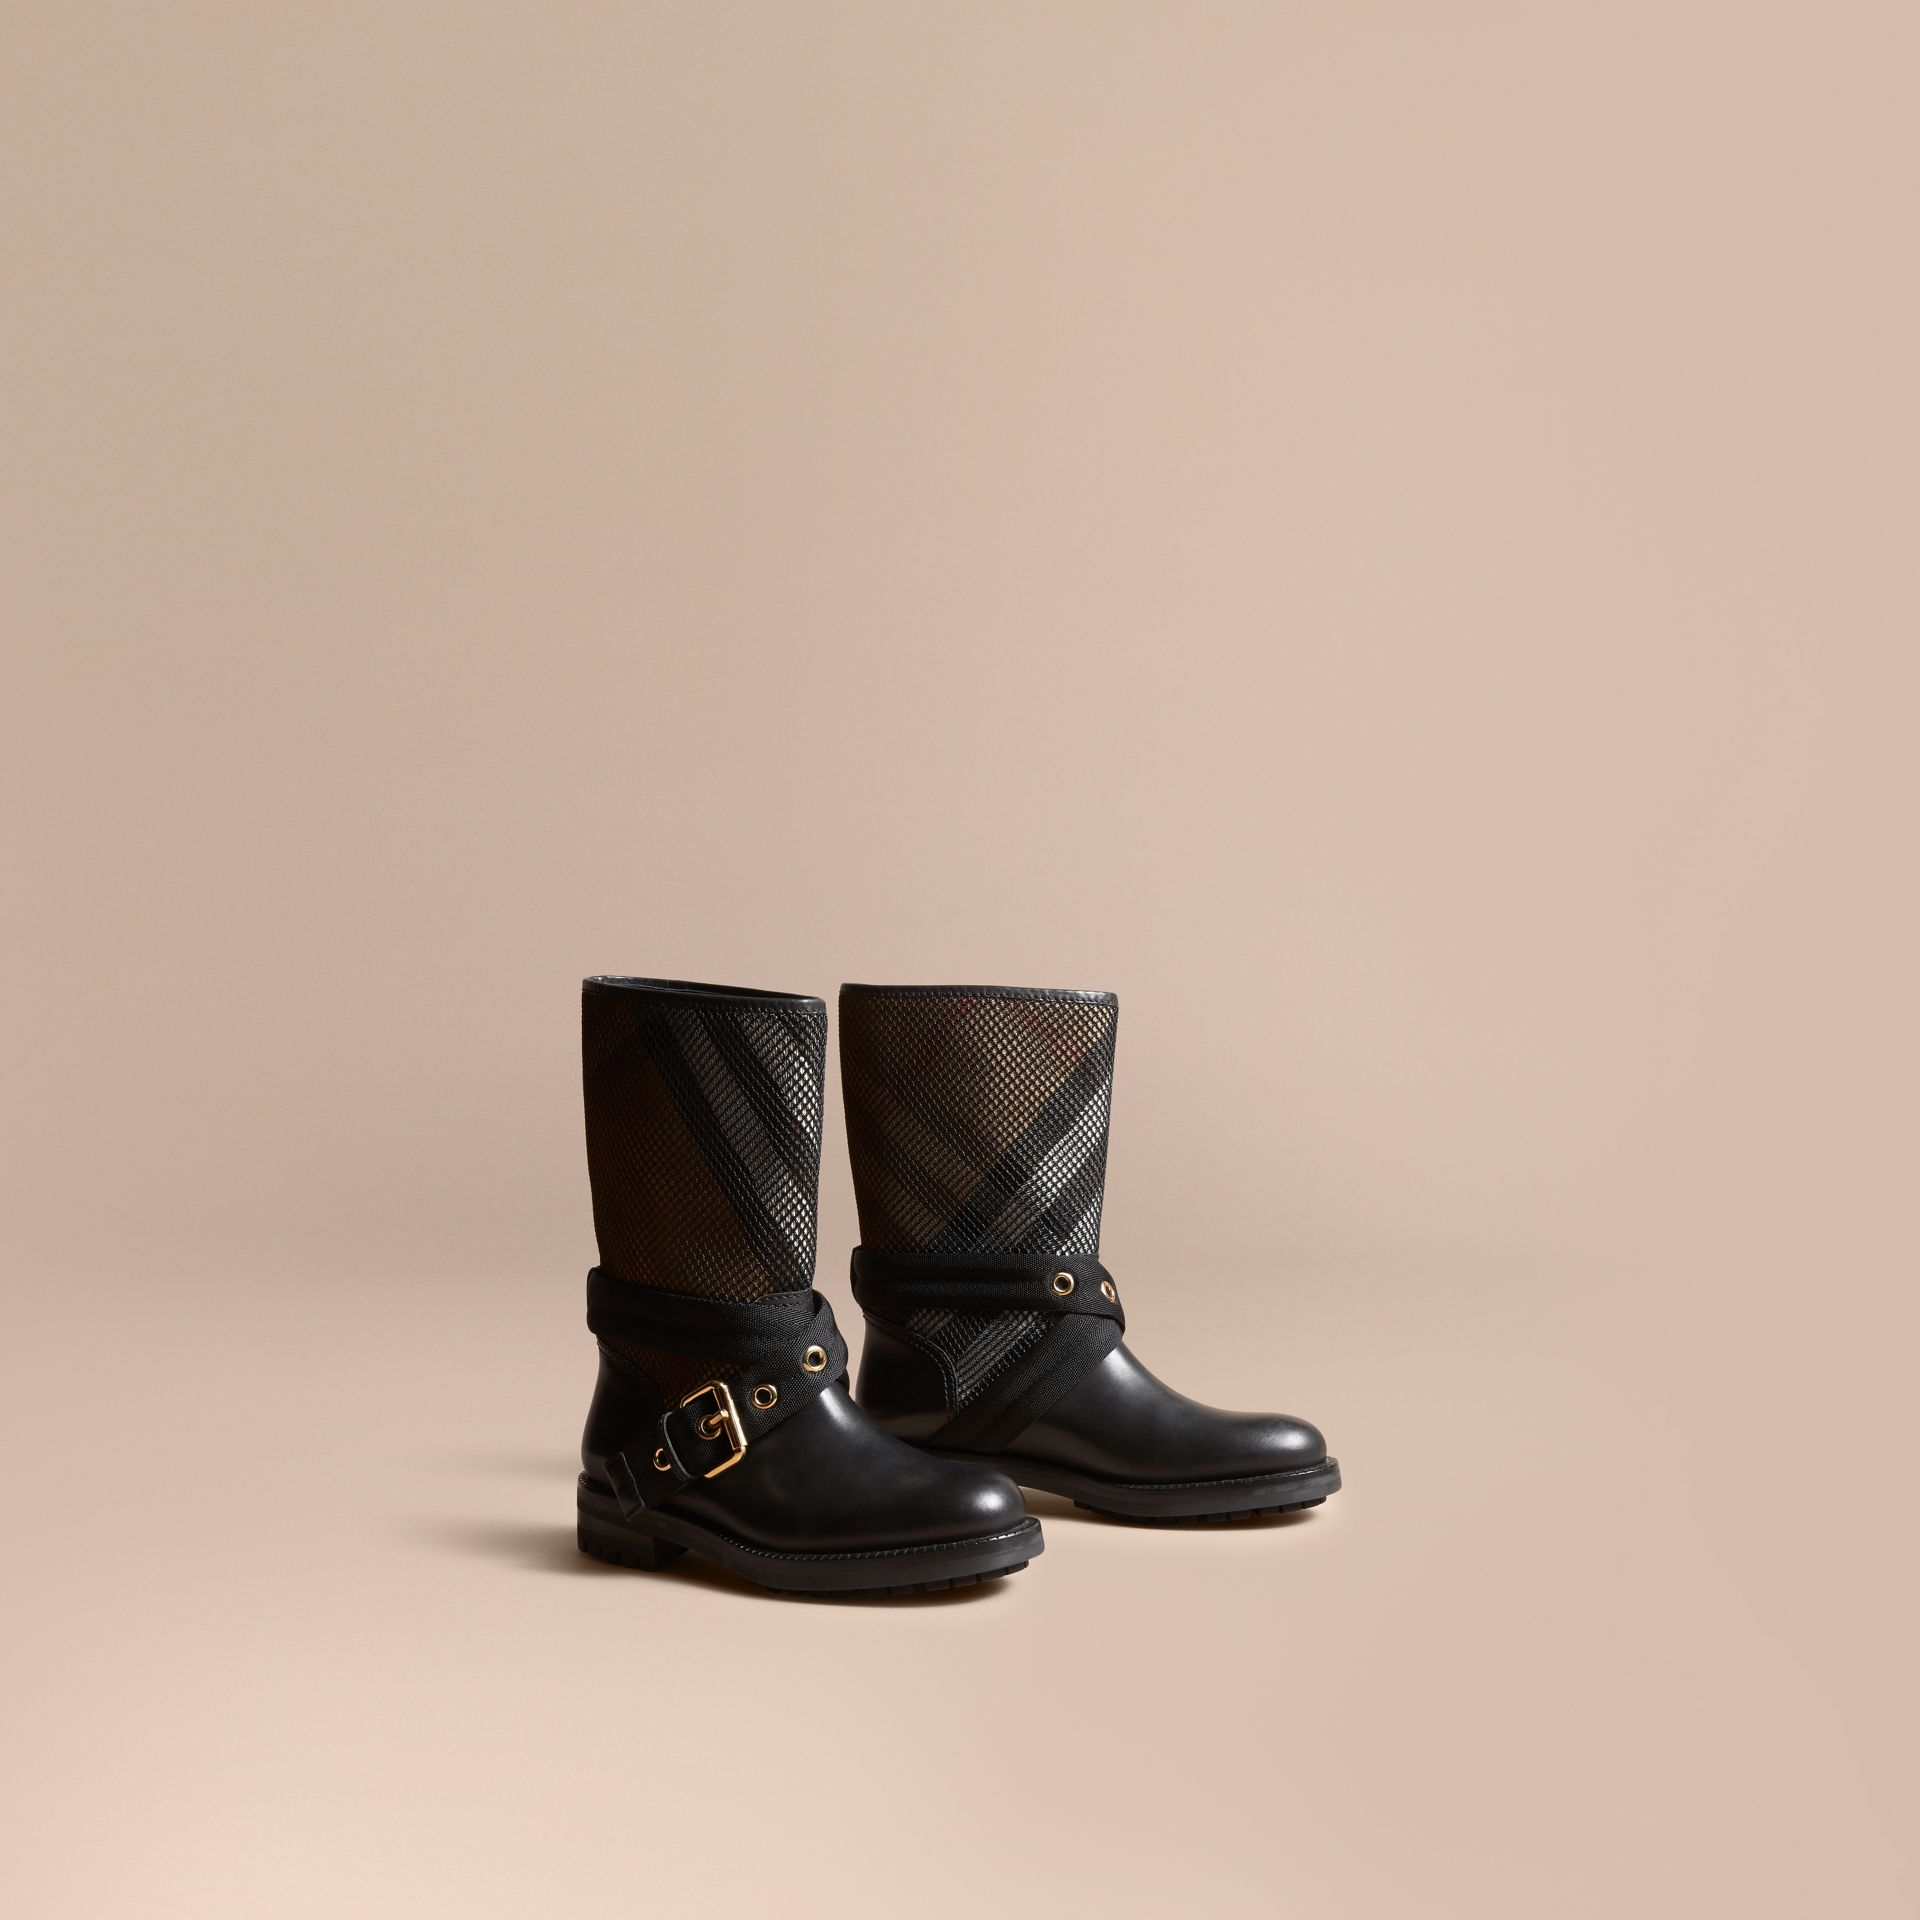 Leather, Mesh and House Check Boots - Women | Burberry Australia - gallery image 1